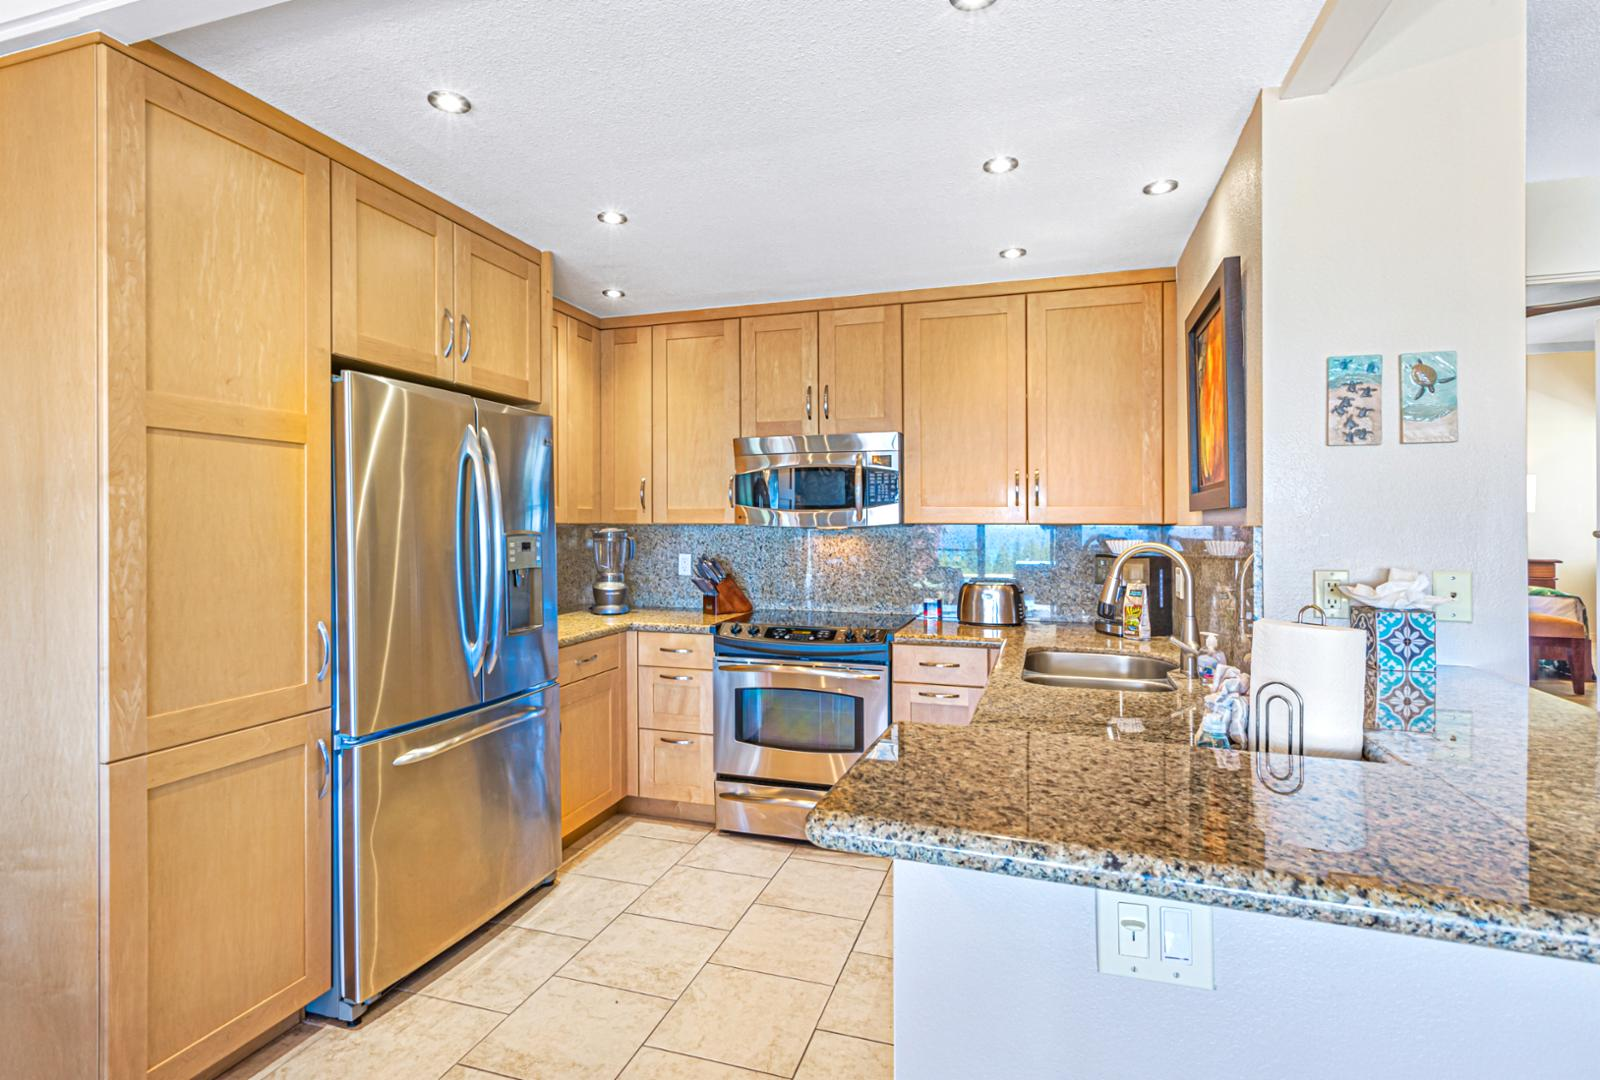 Stainless steel appliances throughout.